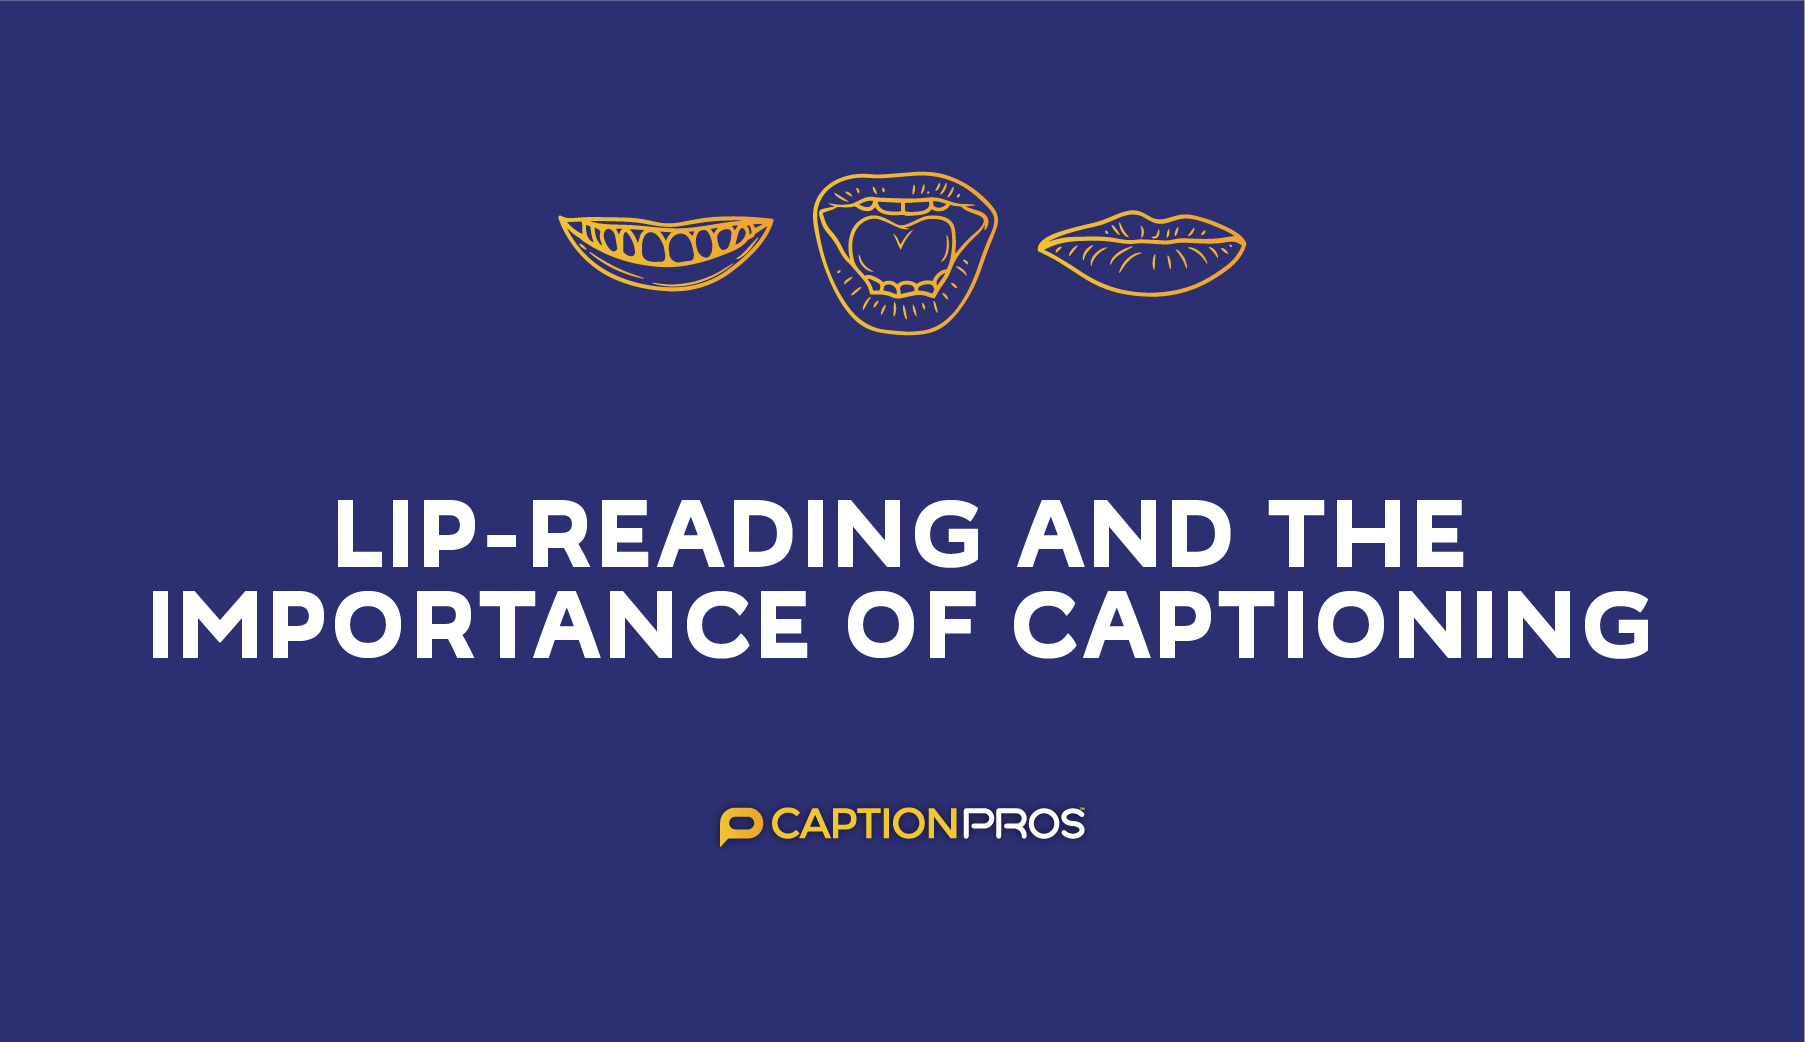 Lip-reading and the importance of captioning